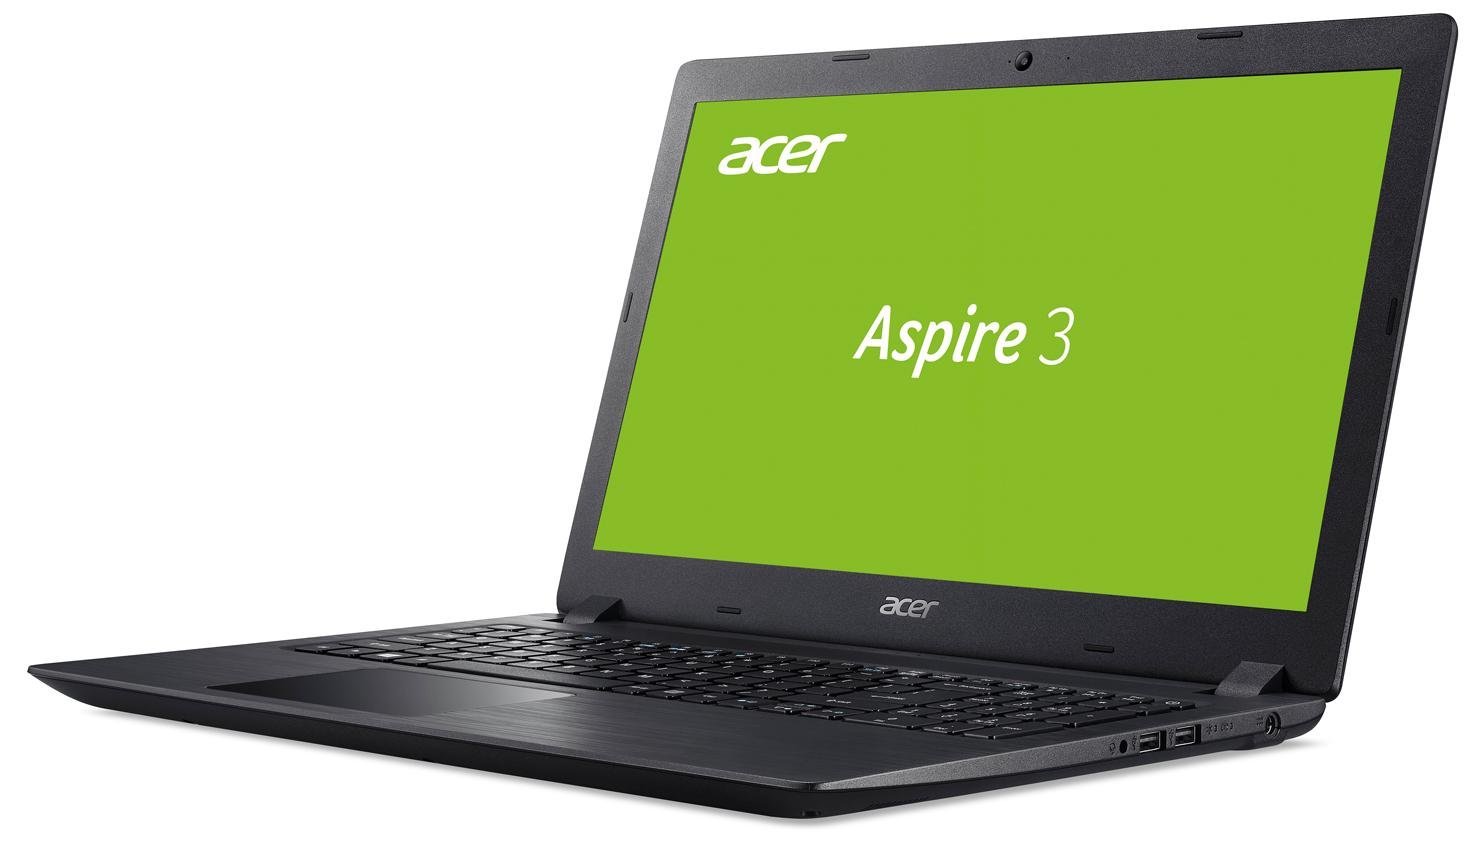 Acer Aspire 3 A315-41-R7V9 Notebook, 15.6 Zoll Full HD, AMD Ryzen 3-2200U, 4GB RAM, 1TB Speicher, Radeon Vega 3 Grafikkarte, Windows 10